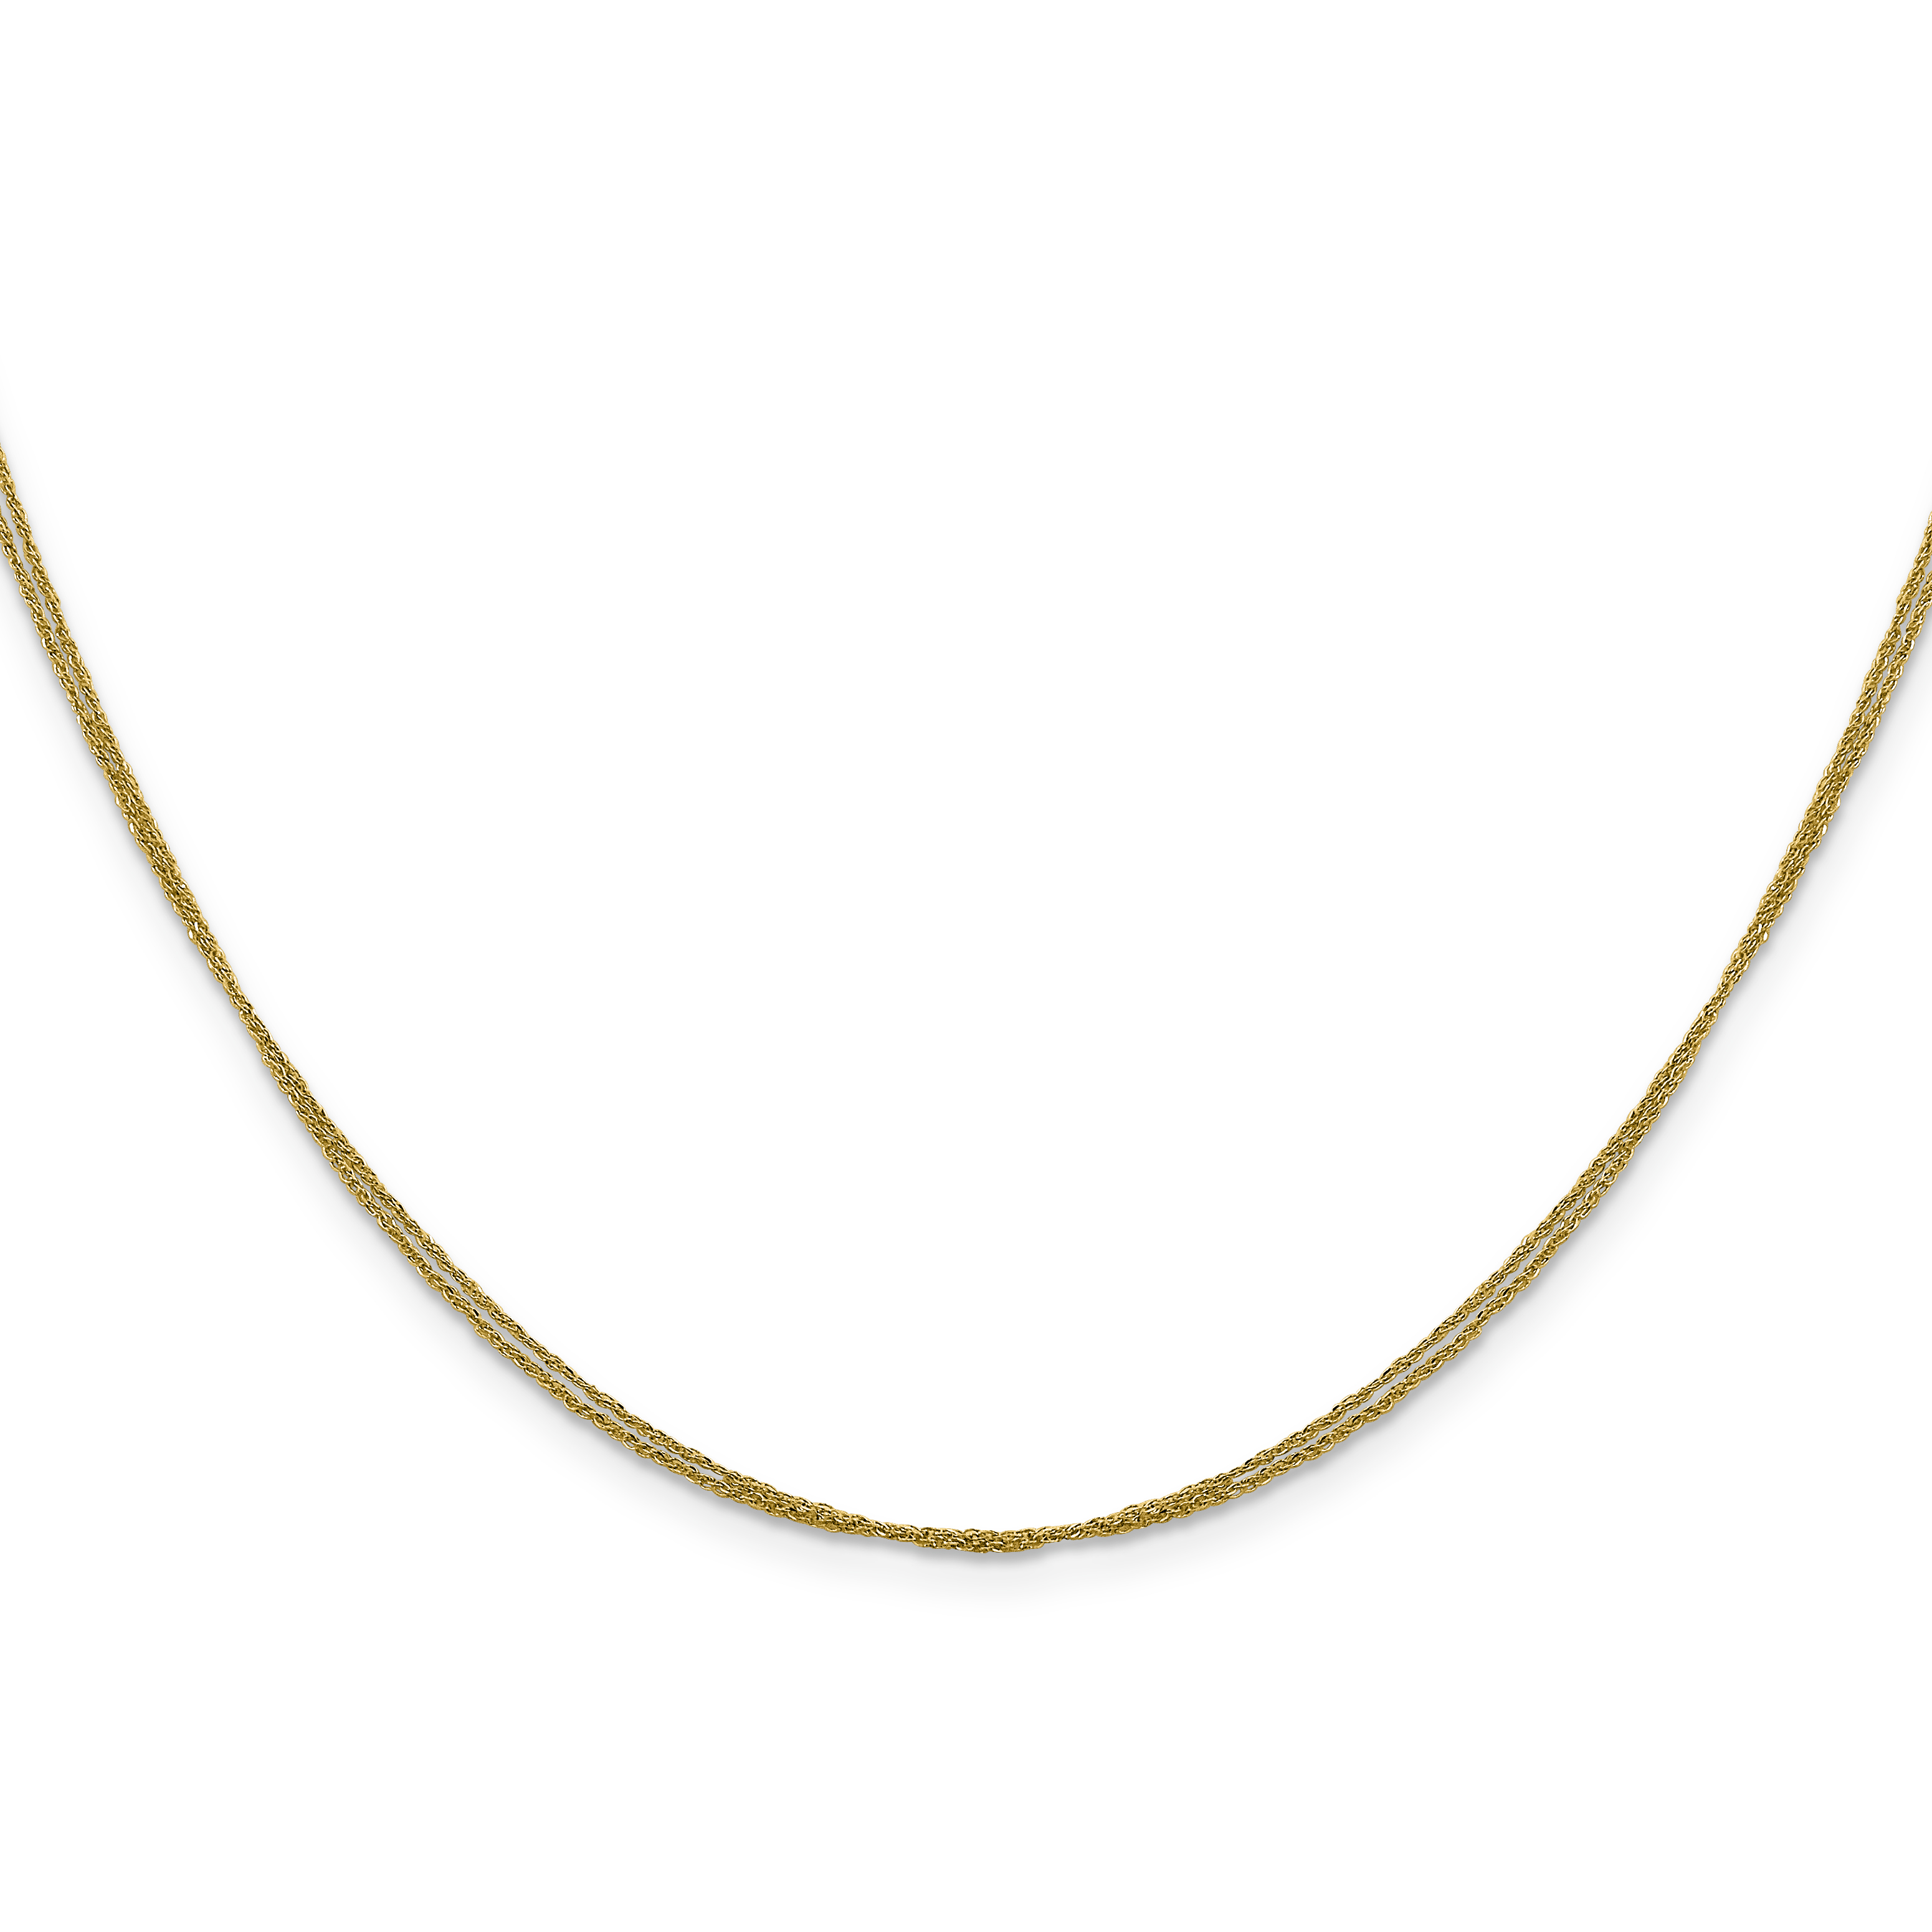 14k .75 mm Double Strand Ropa Chain. Weight: 1.69,  Length: 16